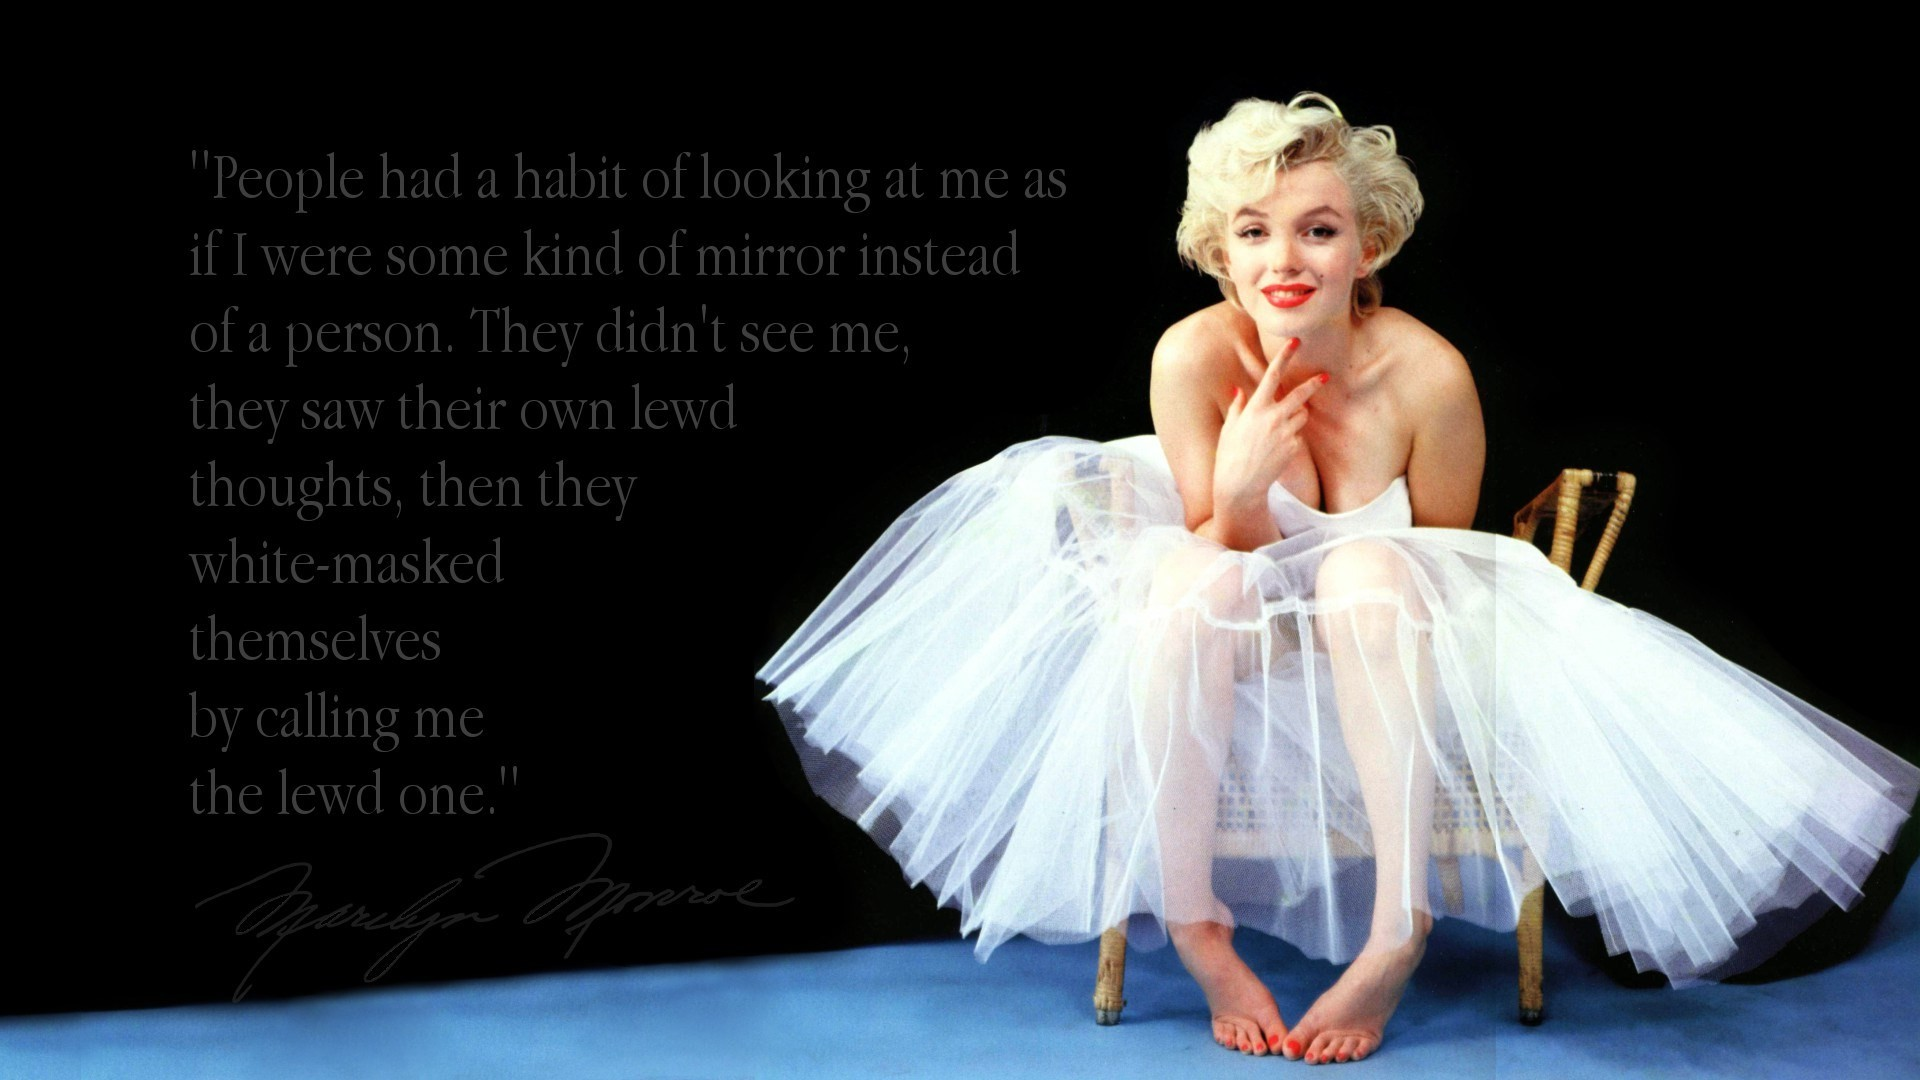 1920x1080 marilyn monroe photos wallpapers